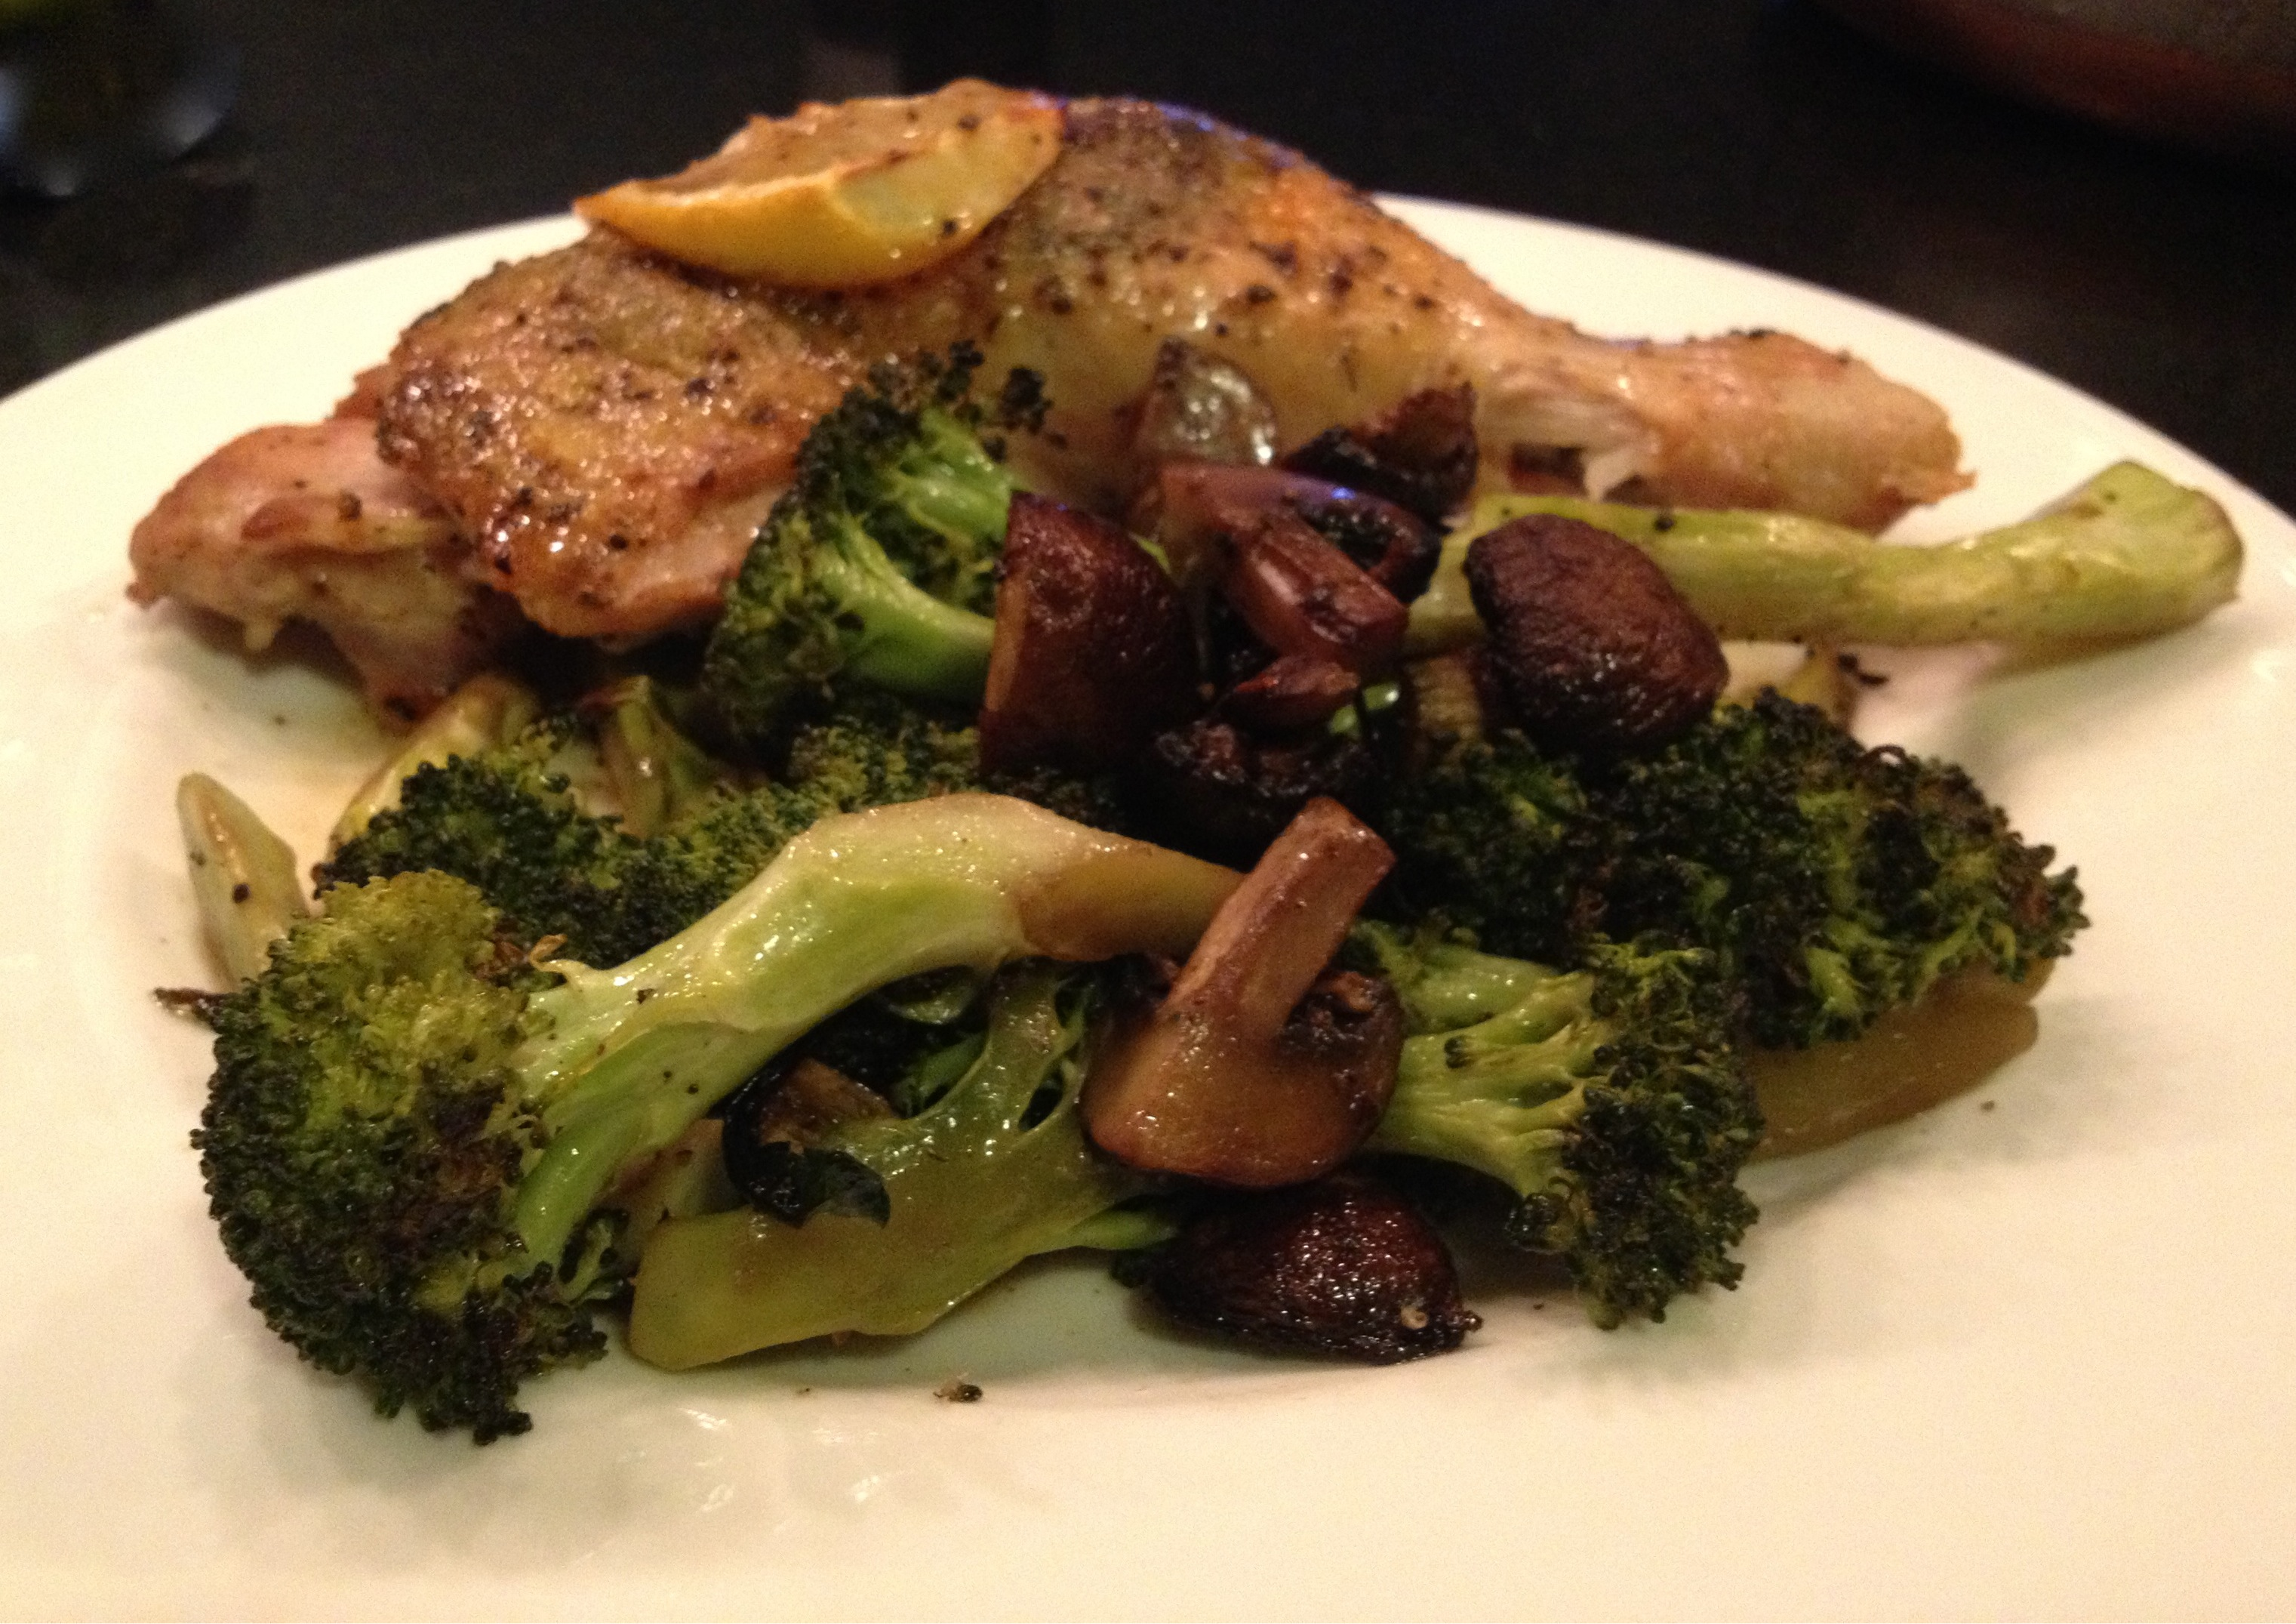 Provencial roast chicken legs with oven roasted broccoli and mushrooms on a white Wedgewood plate.